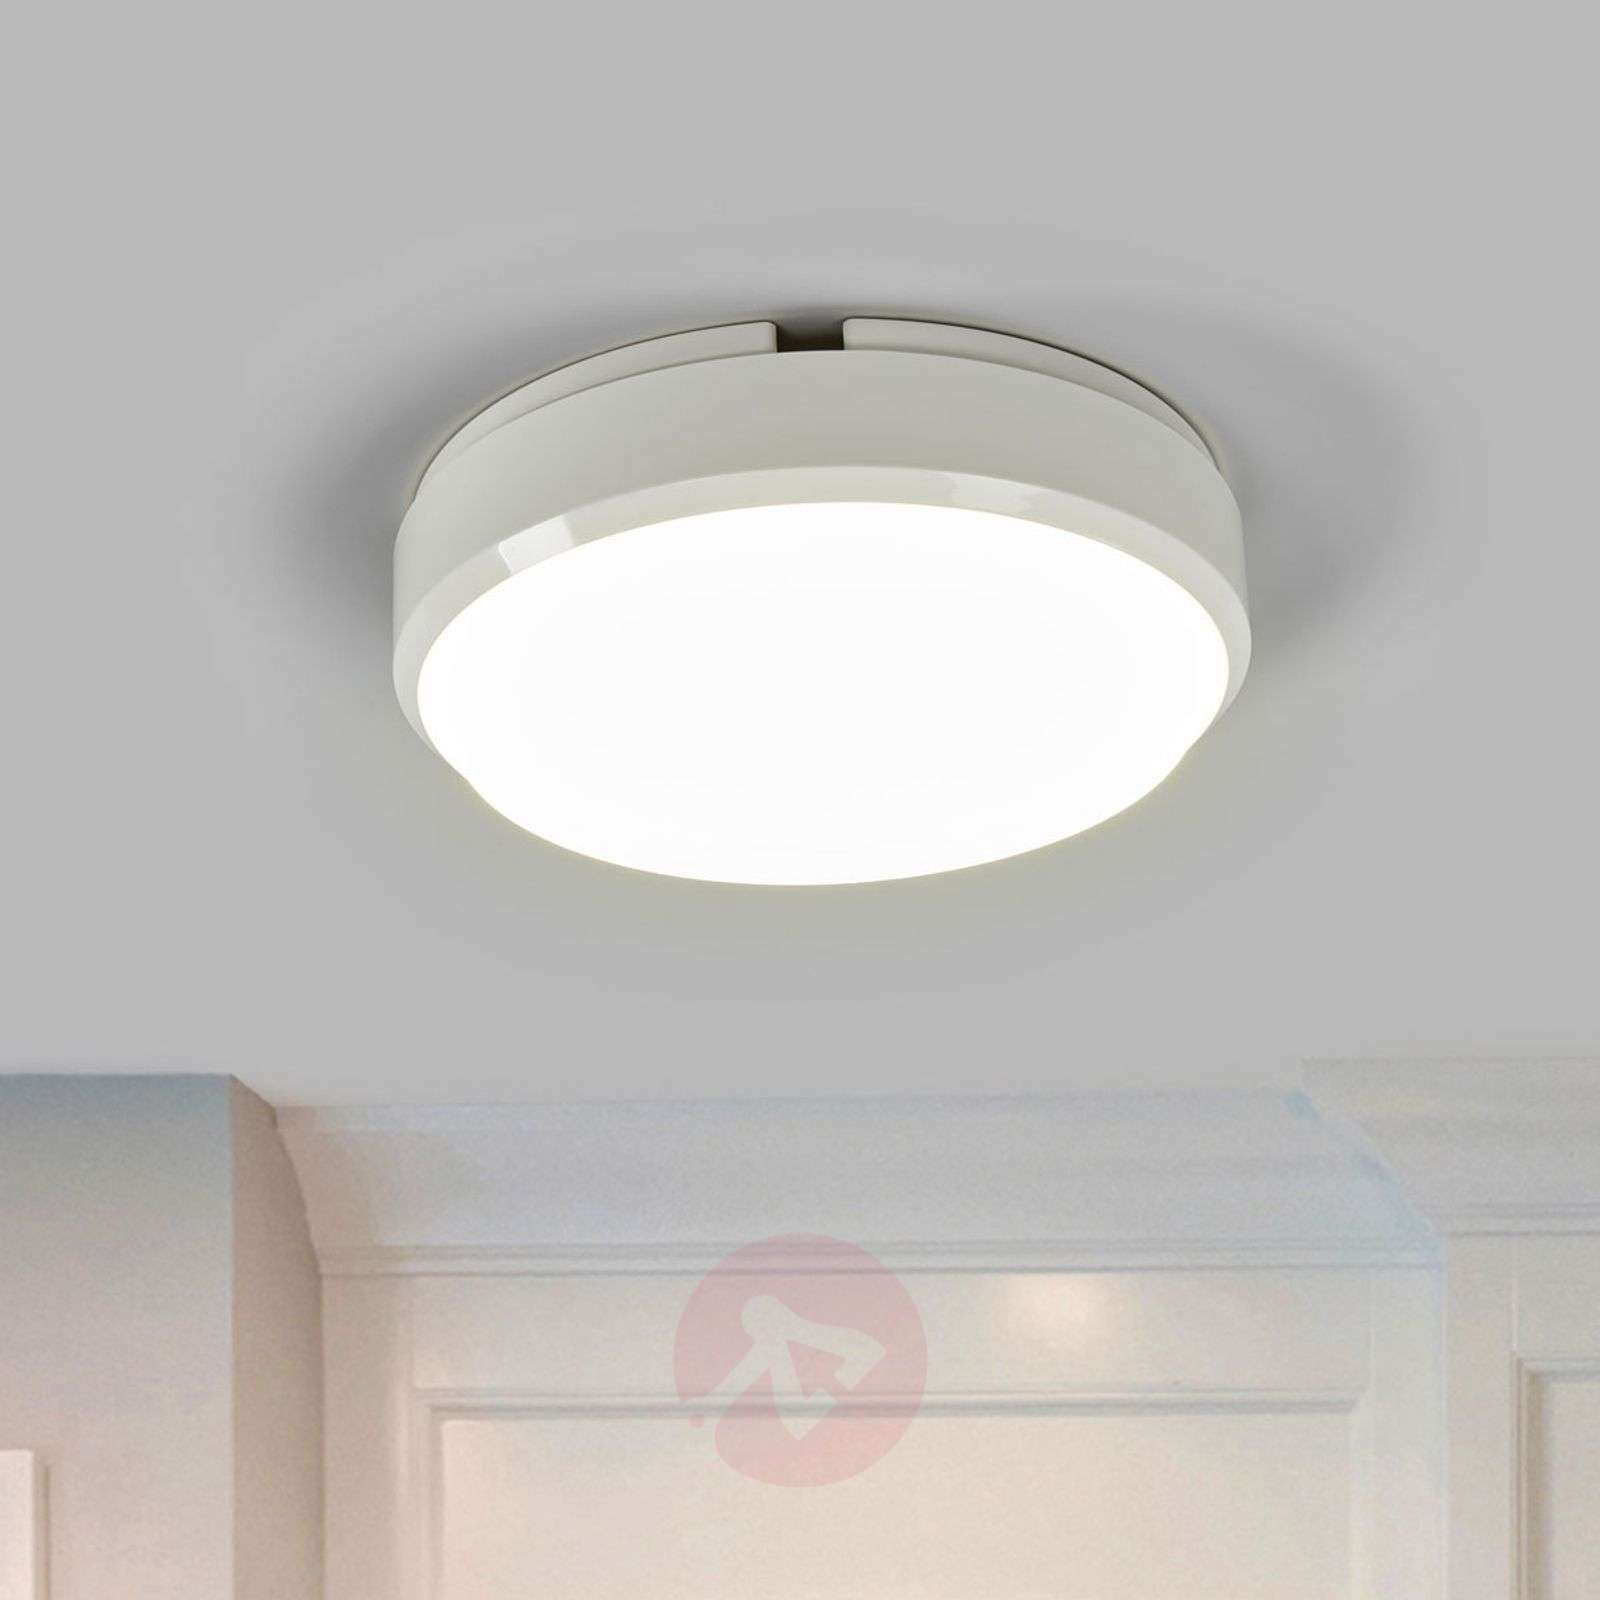 Round led ceiling light bulkhead with sensor lights round led ceiling light bulkhead with sensor 8559218 02 mozeypictures Gallery